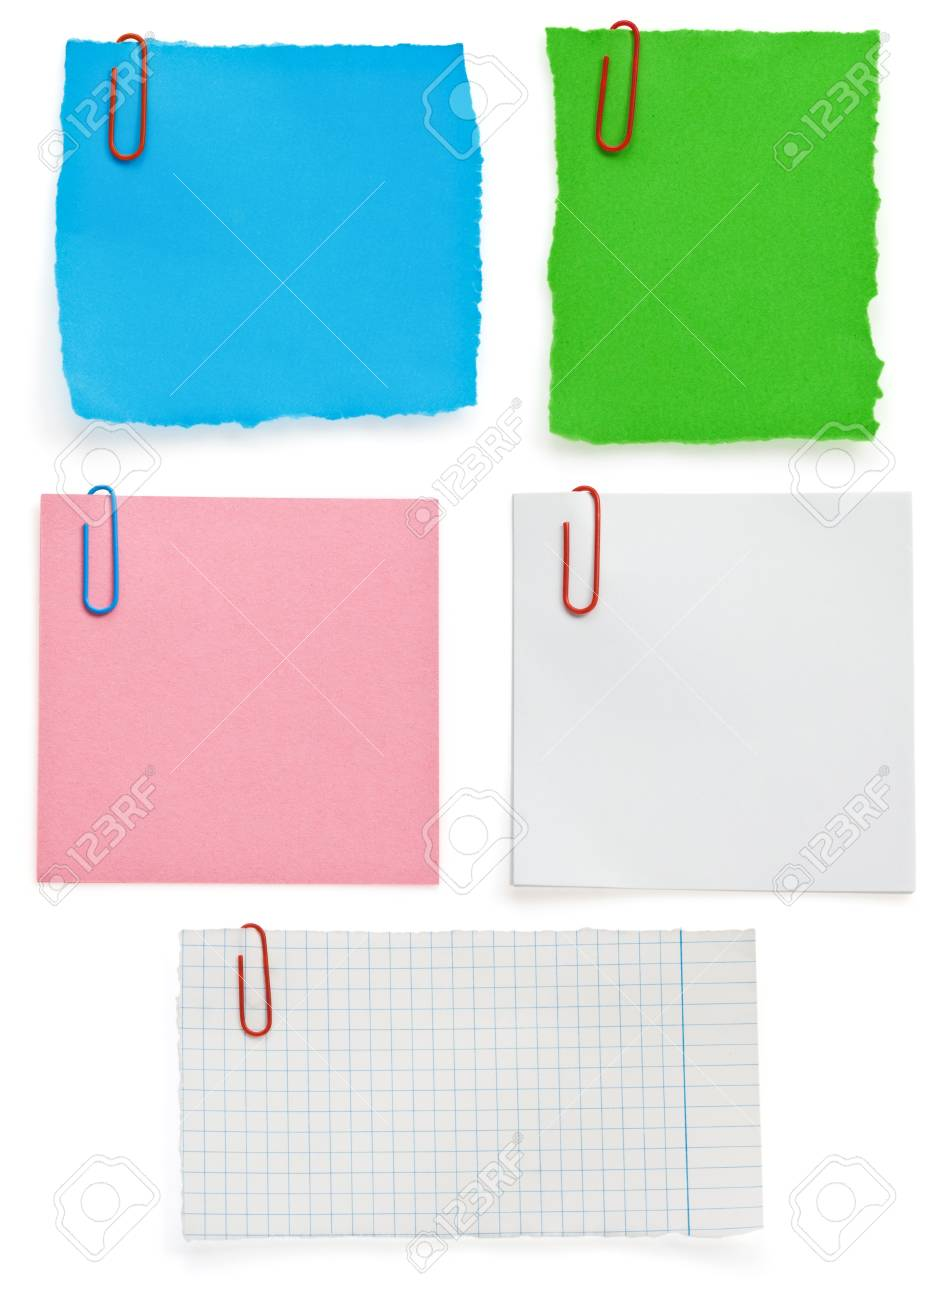 ragged note paper and clip isolated on white background Stock Photo - 16657769